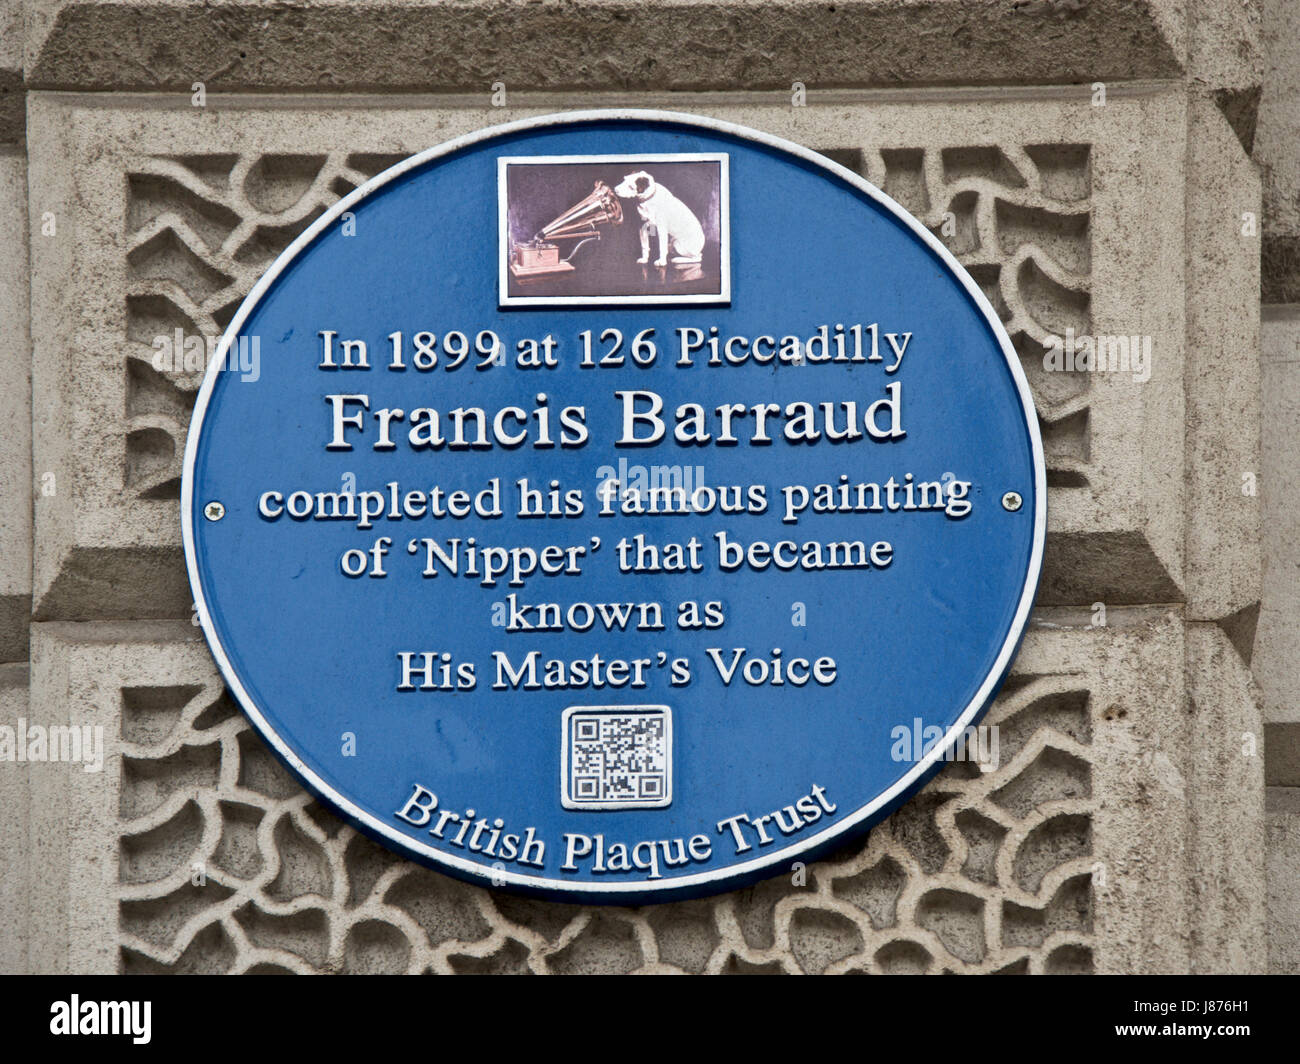 Blue Plaque commemorating Francis Barraud and 'Nipper' in Piccadilly - Stock Image